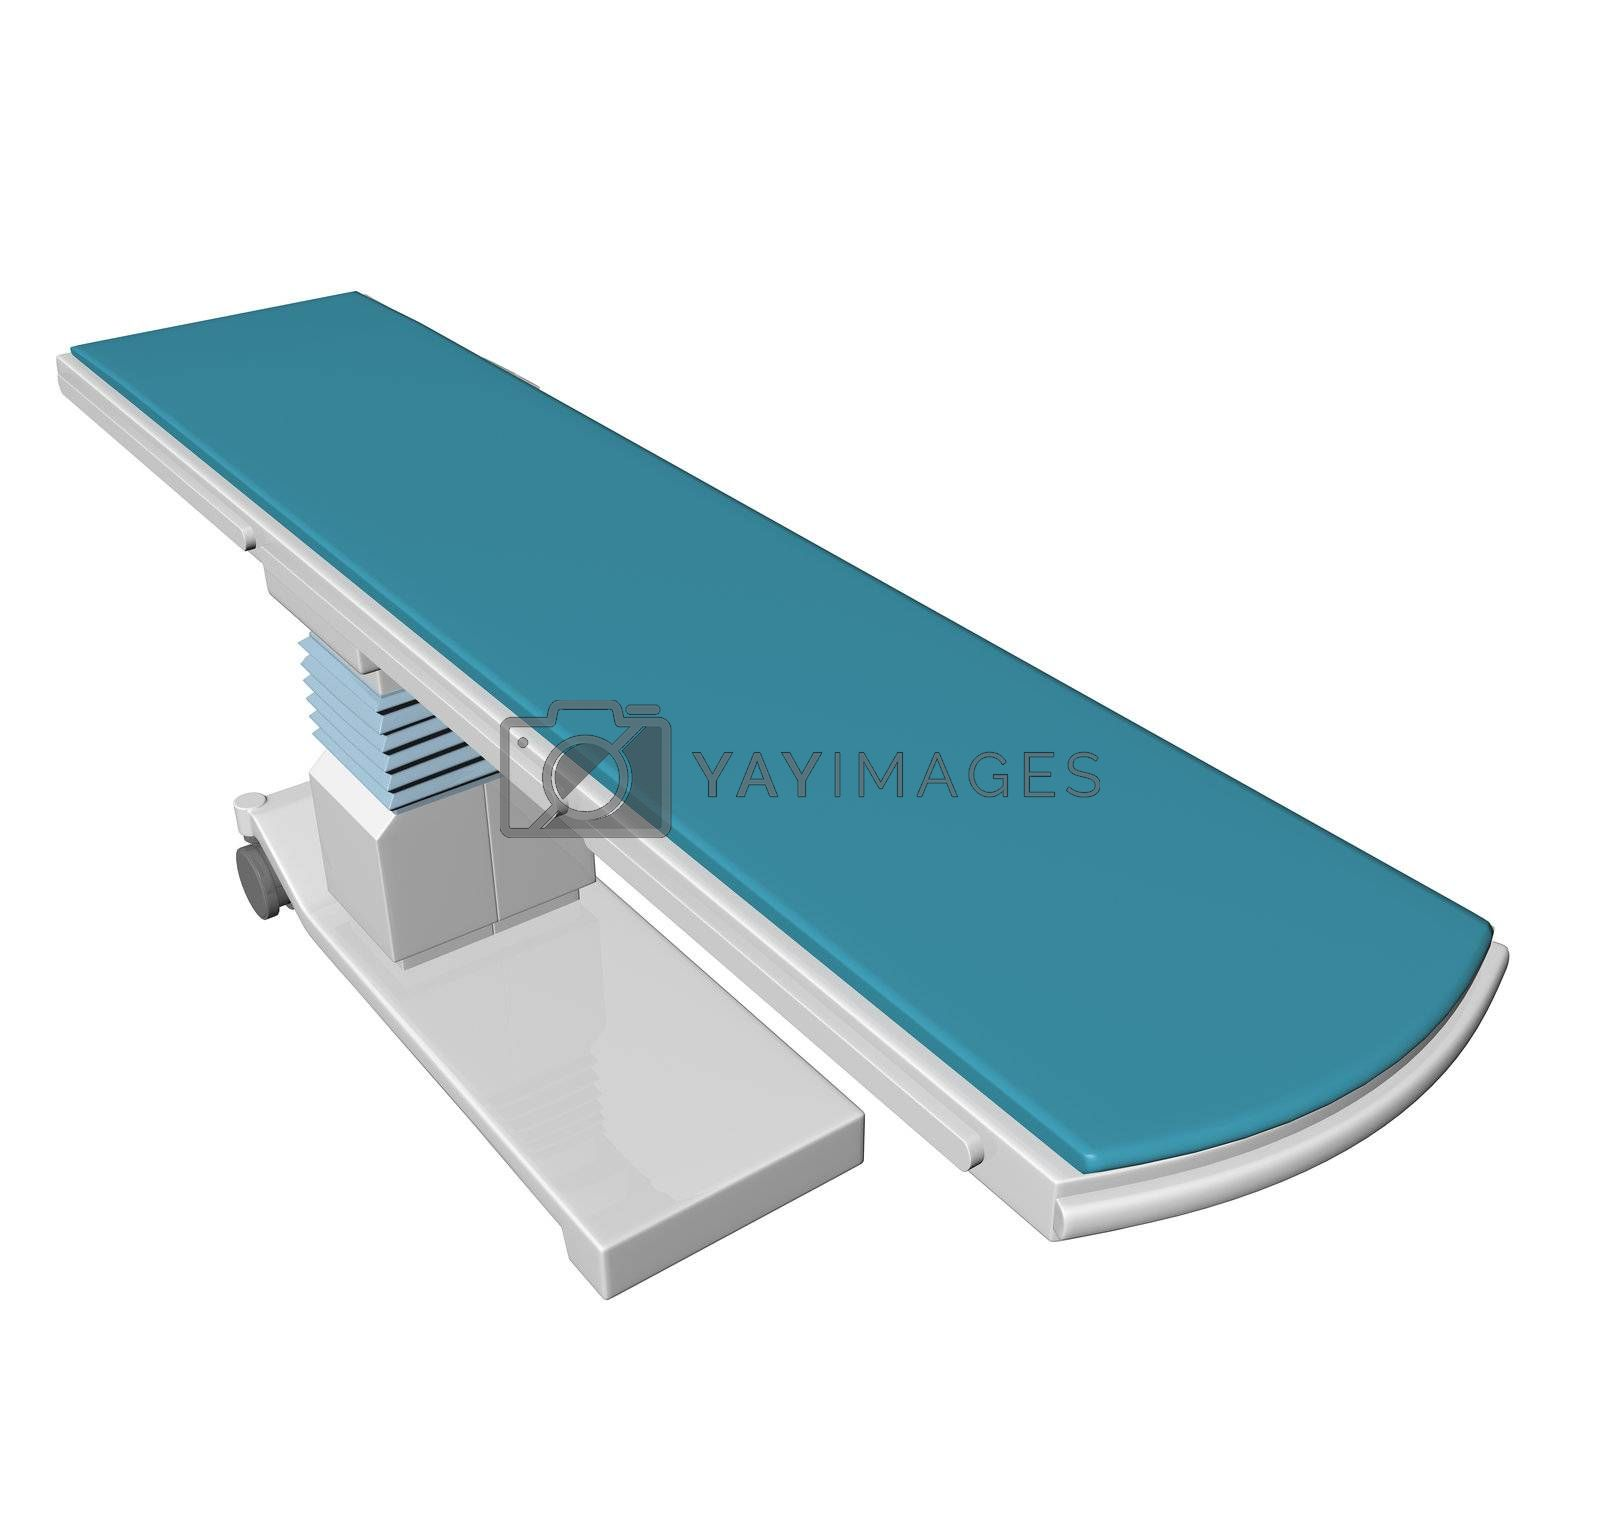 Adjustable height medical examination table or bed with blue padding, 3D illustration, isolated against a white background